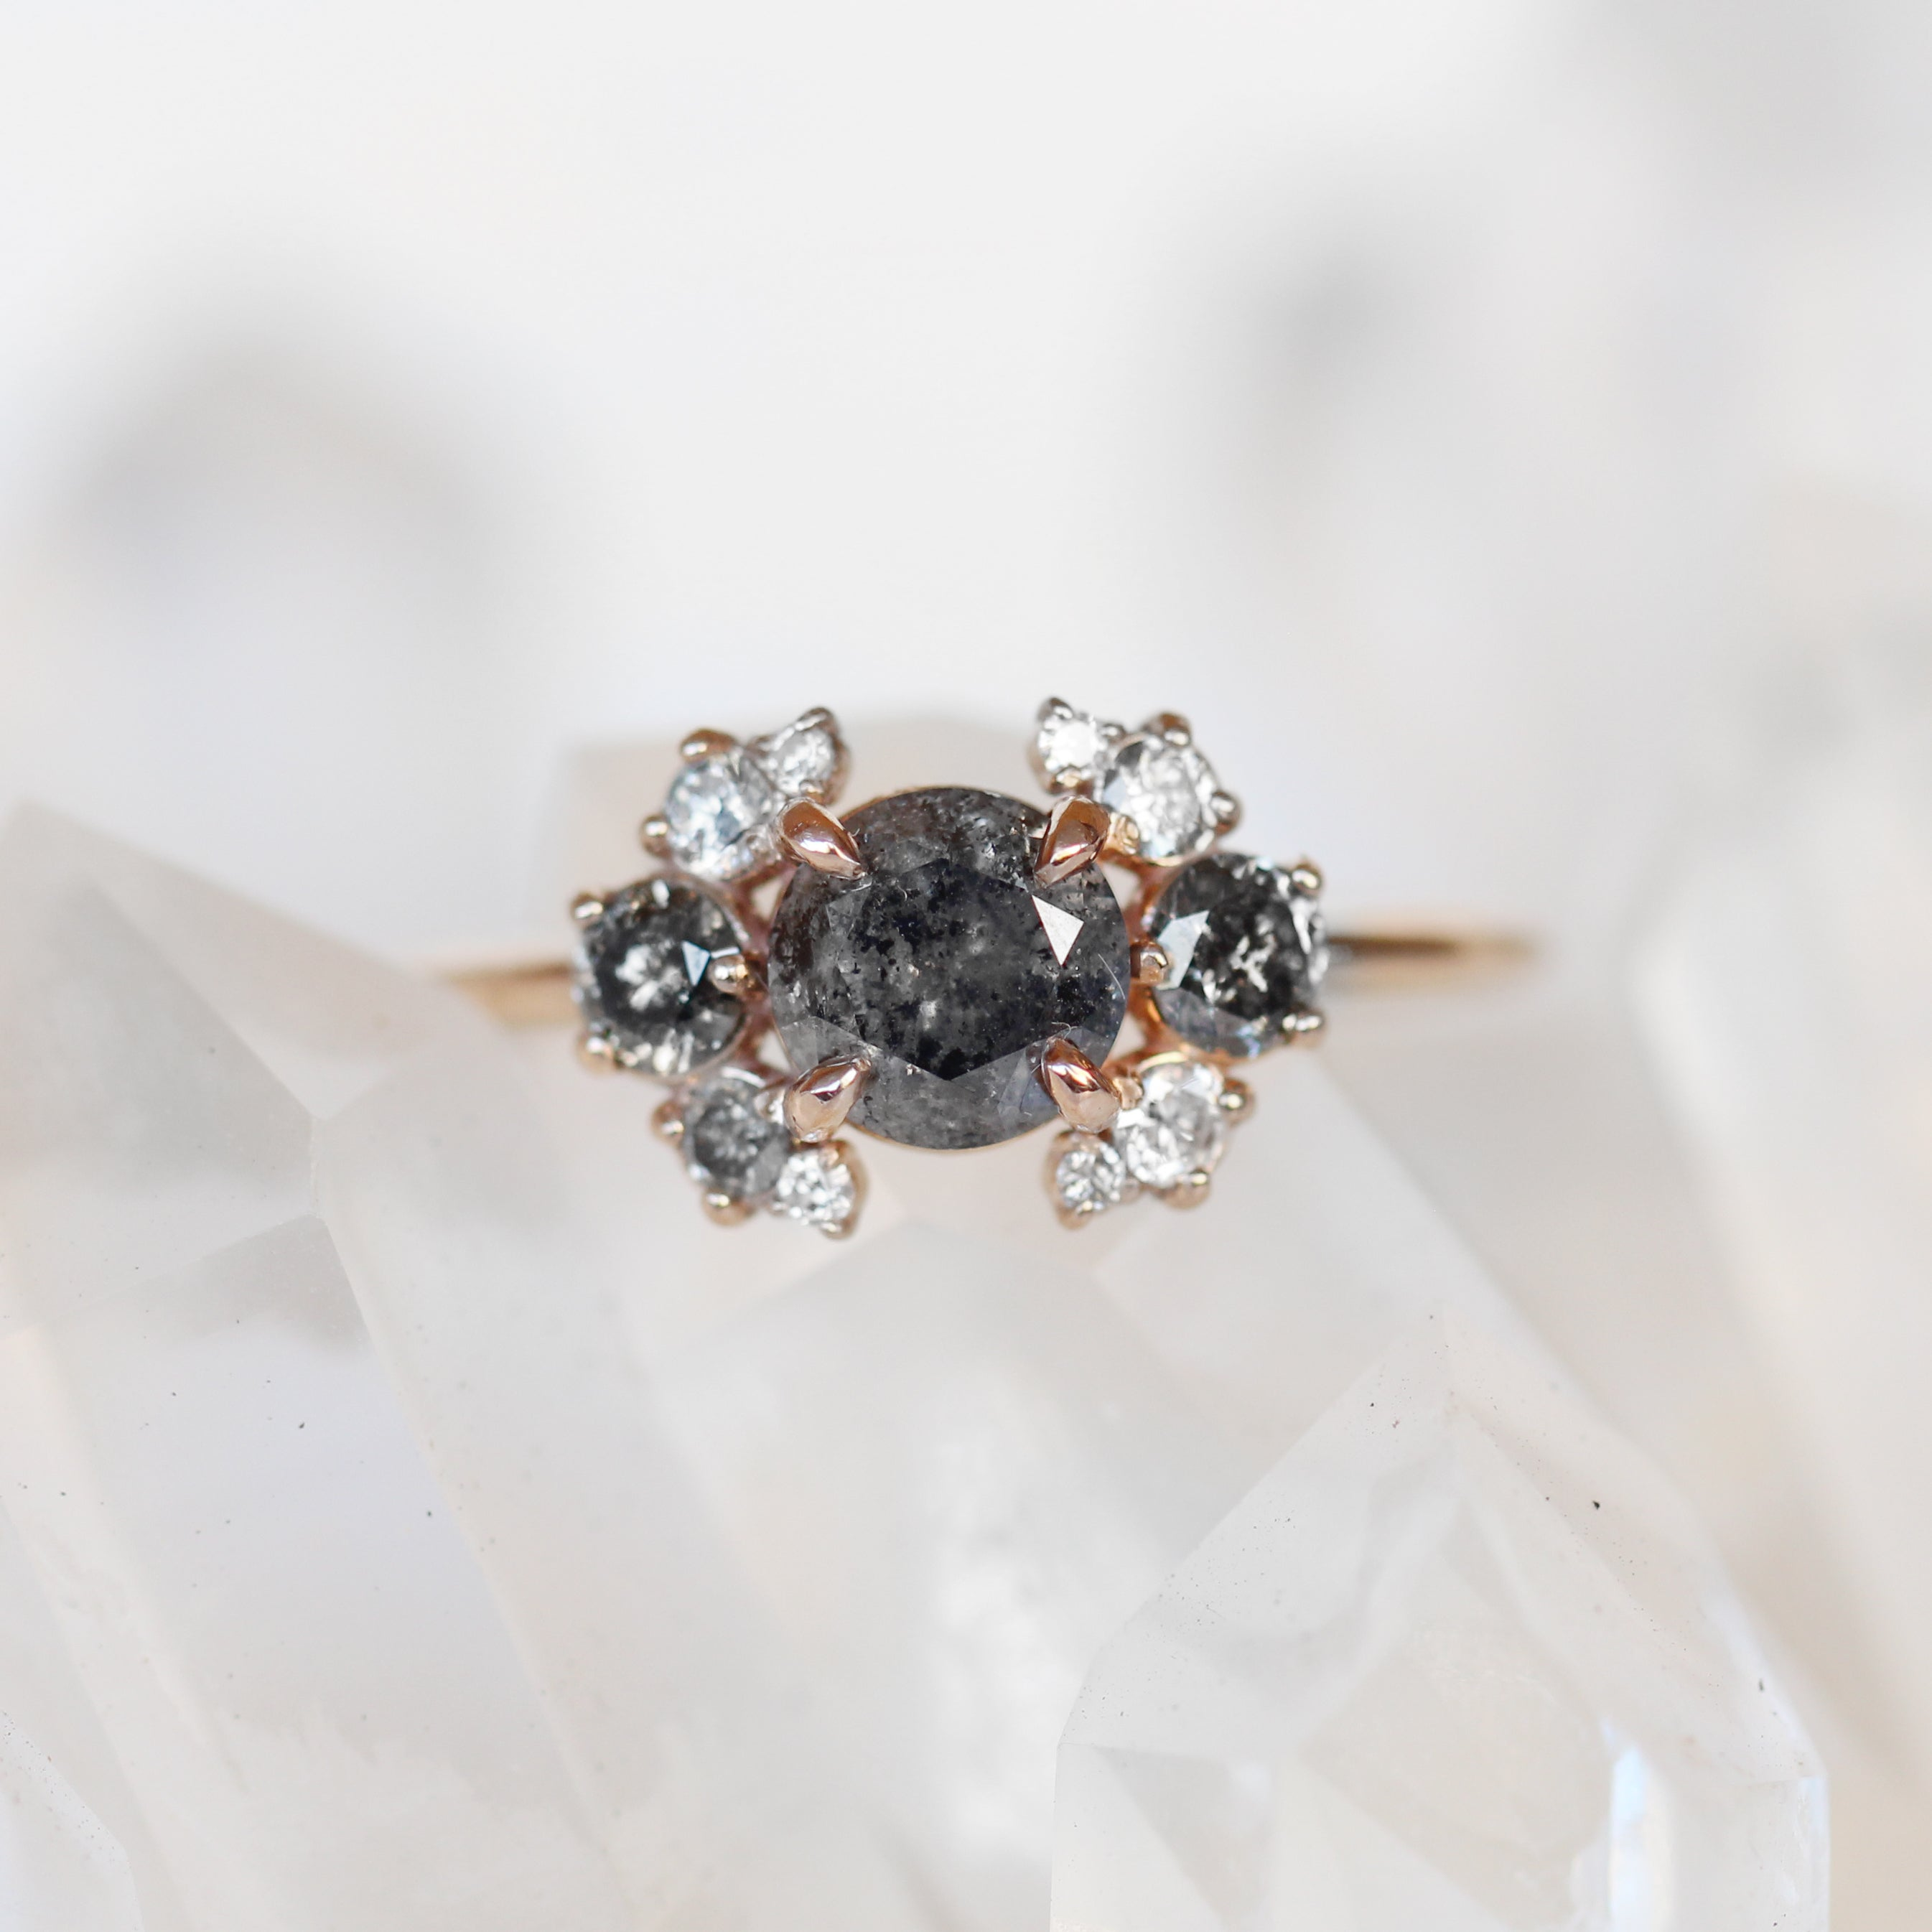 Eira - Diamond Cluster Ring in 10k Rose Gold - Ready to size and ship - Celestial Diamonds ® by Midwinter Co.